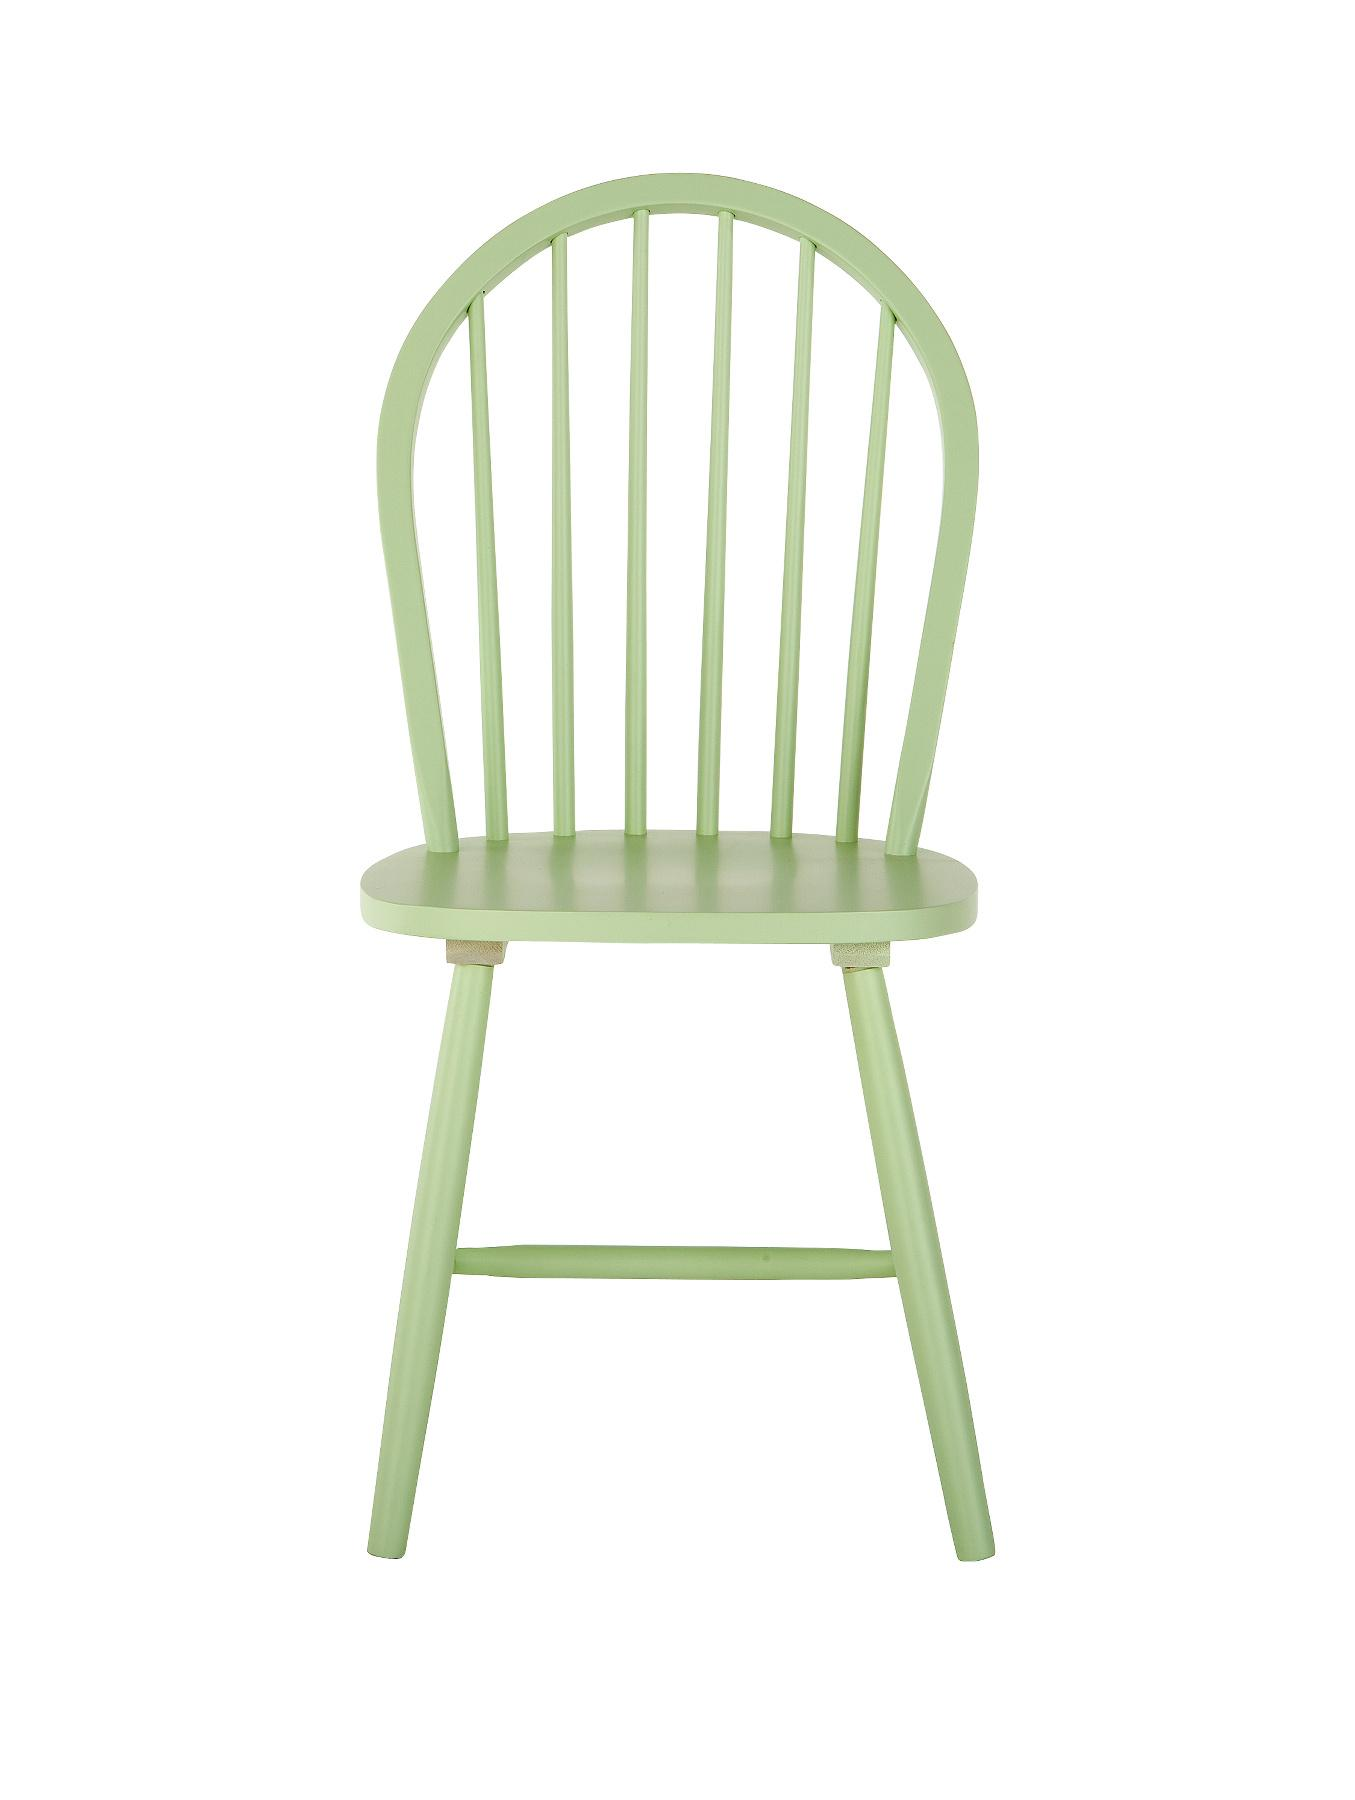 Daisy Chair - Green, Green